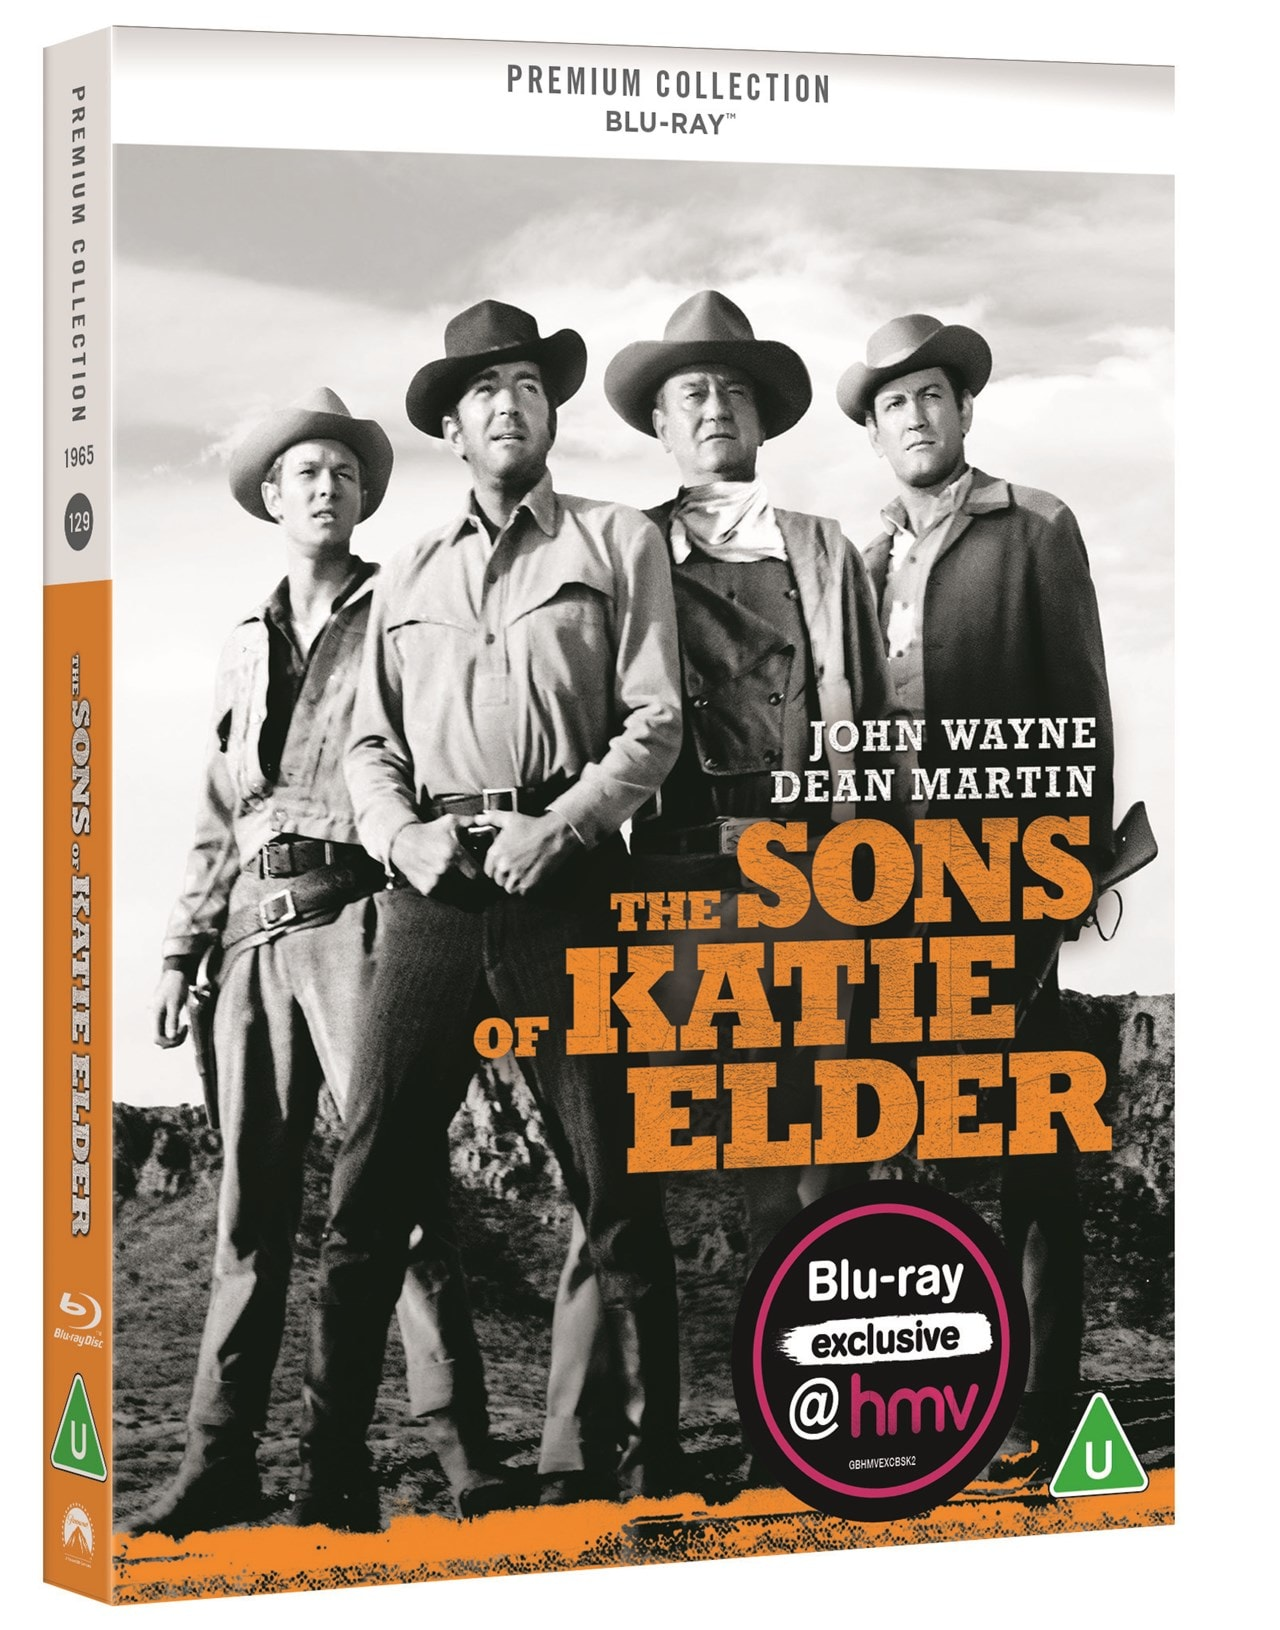 The Sons of Katie Elder (hmv Exclusive) - The Premium Collection - 3